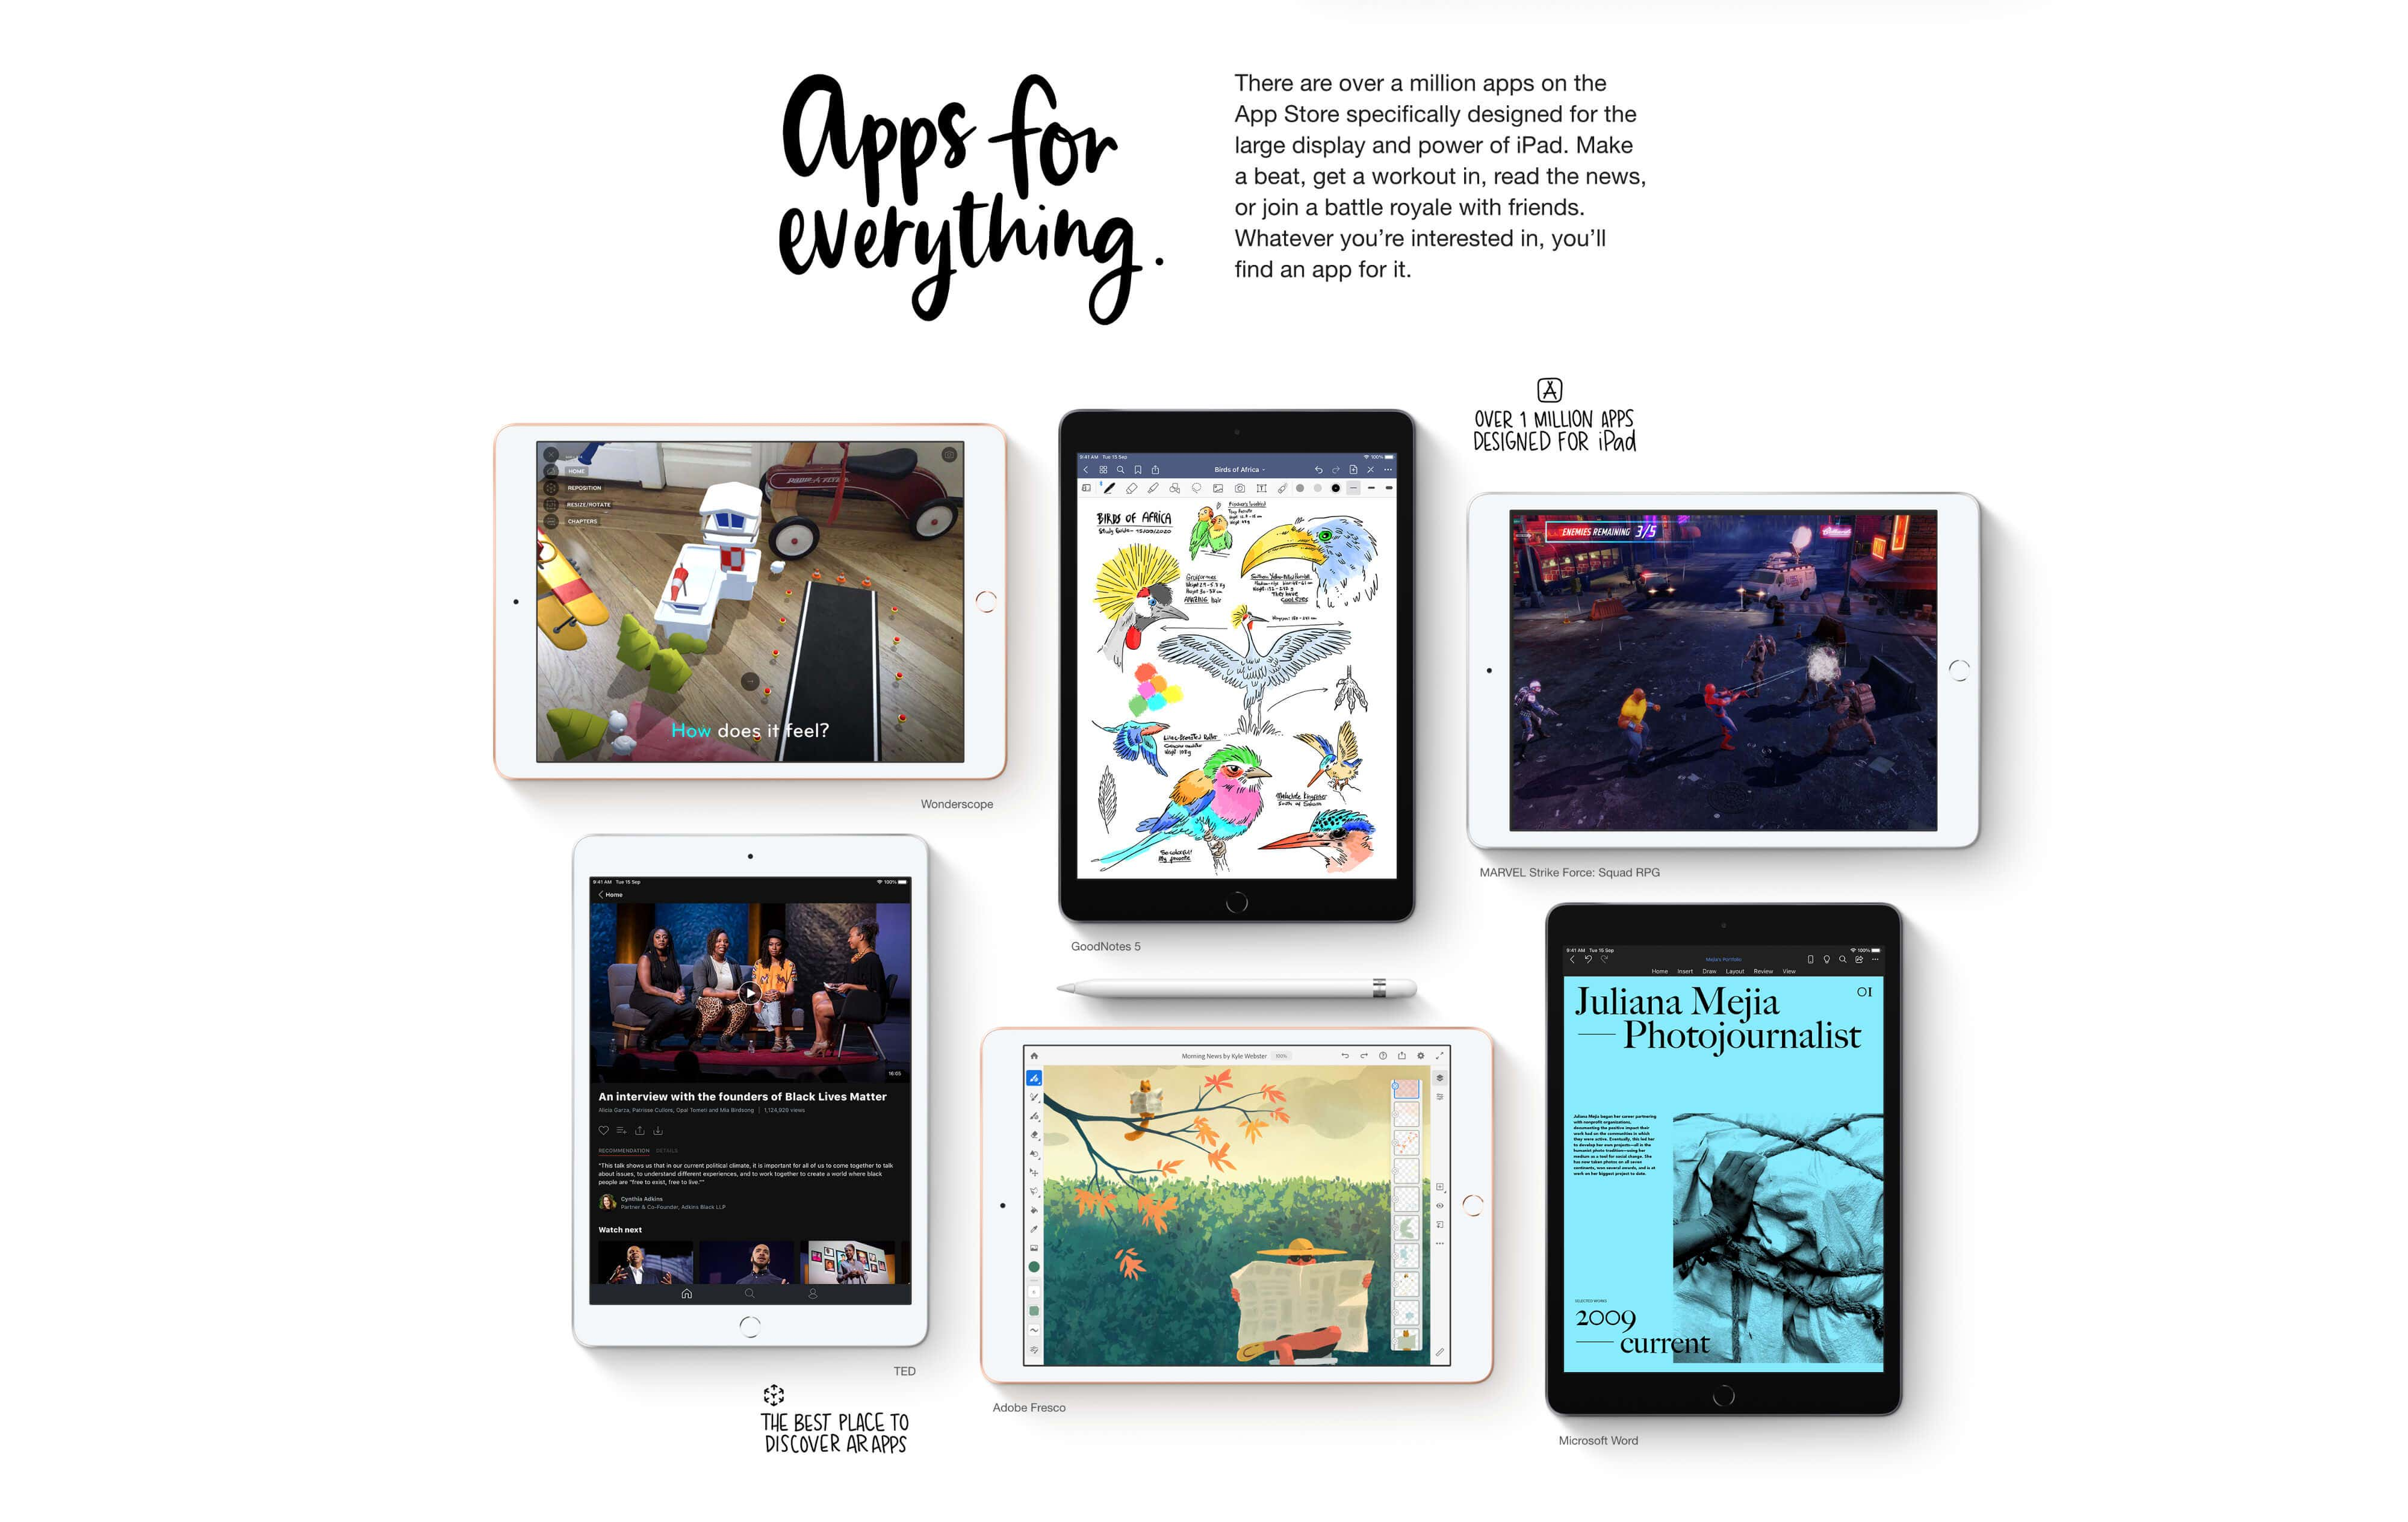 iPad 8th Generation -  App Store has over 1 million Apps designed for iPad.